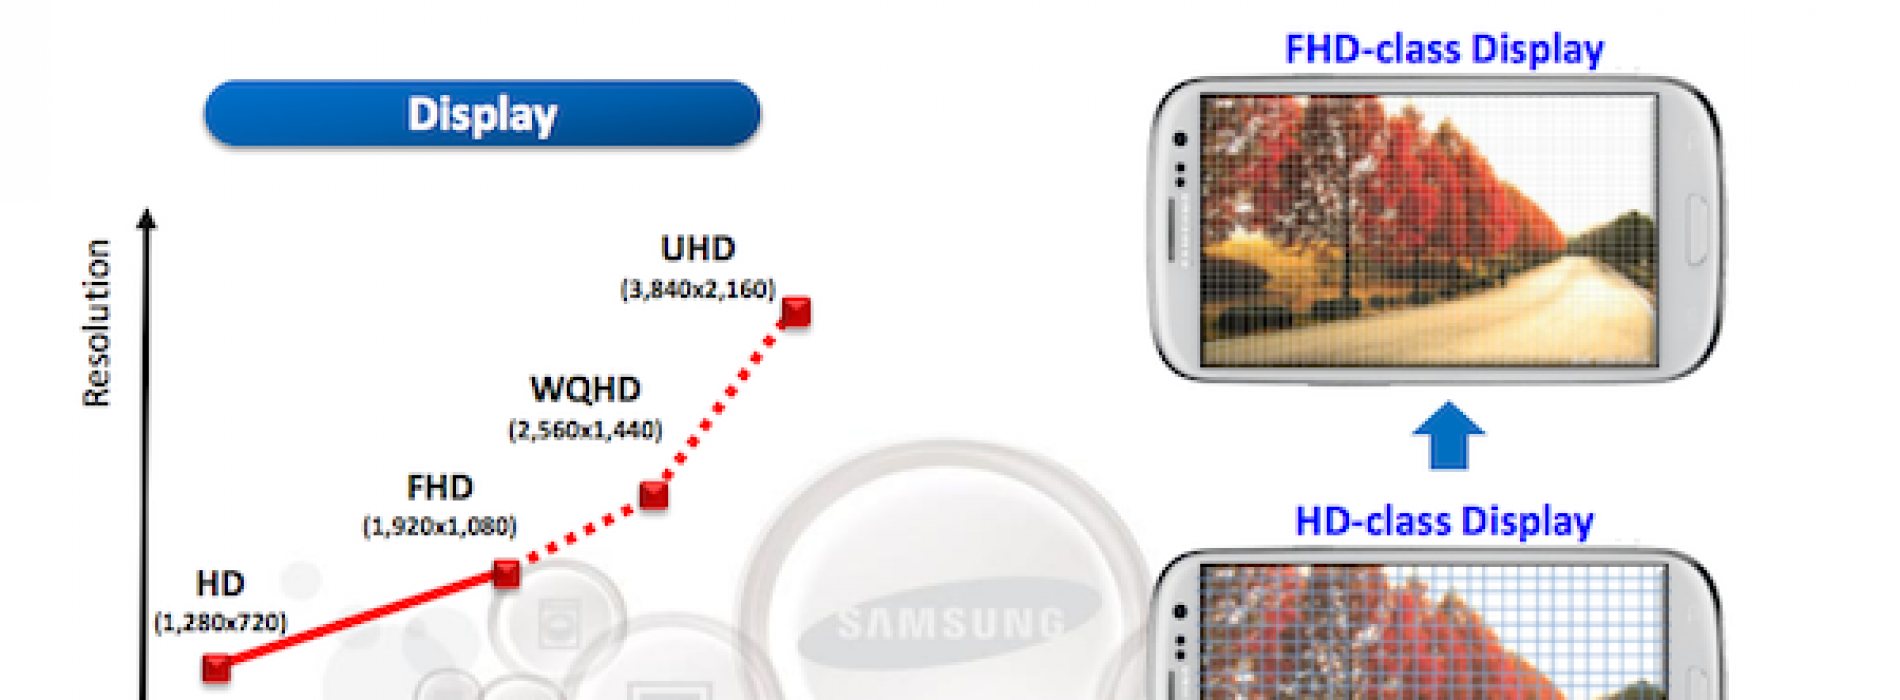 Samsung smartphones could see 560ppi resolution in 2014